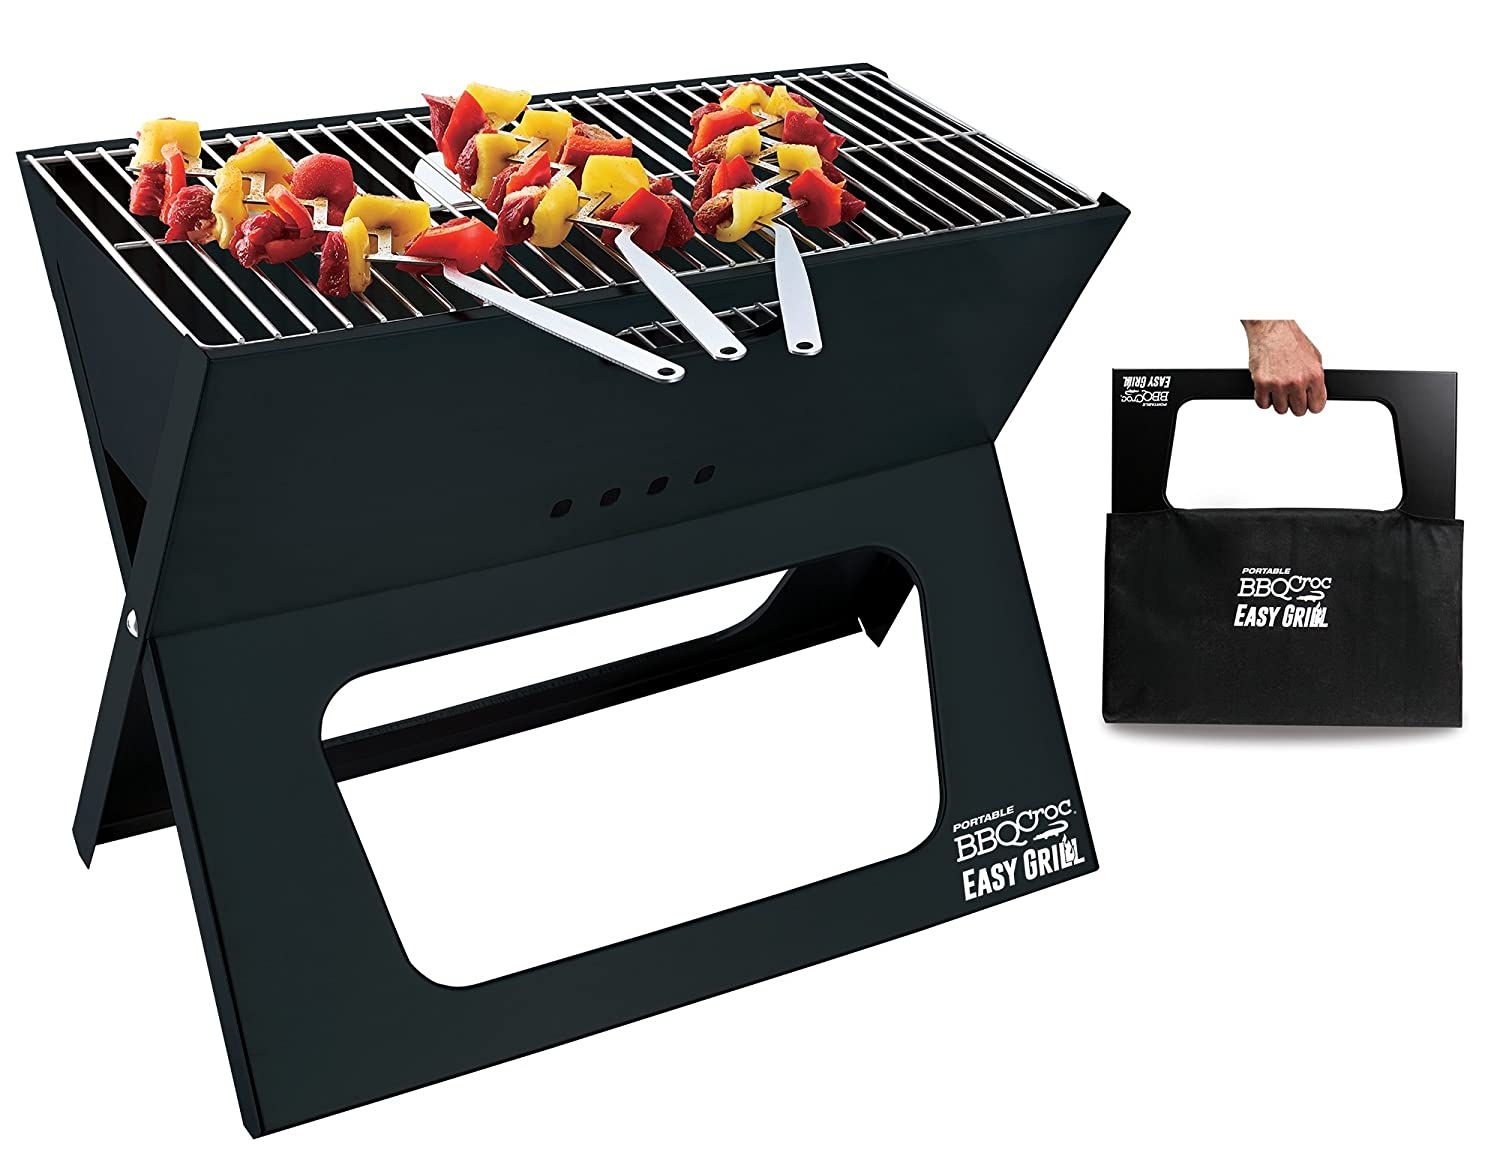 Portable BBQ Croc Easy Grill - Premium Foldable Charcoal Barbecue Very Large Grilling Surface CROC TOOLS Inc. 89930